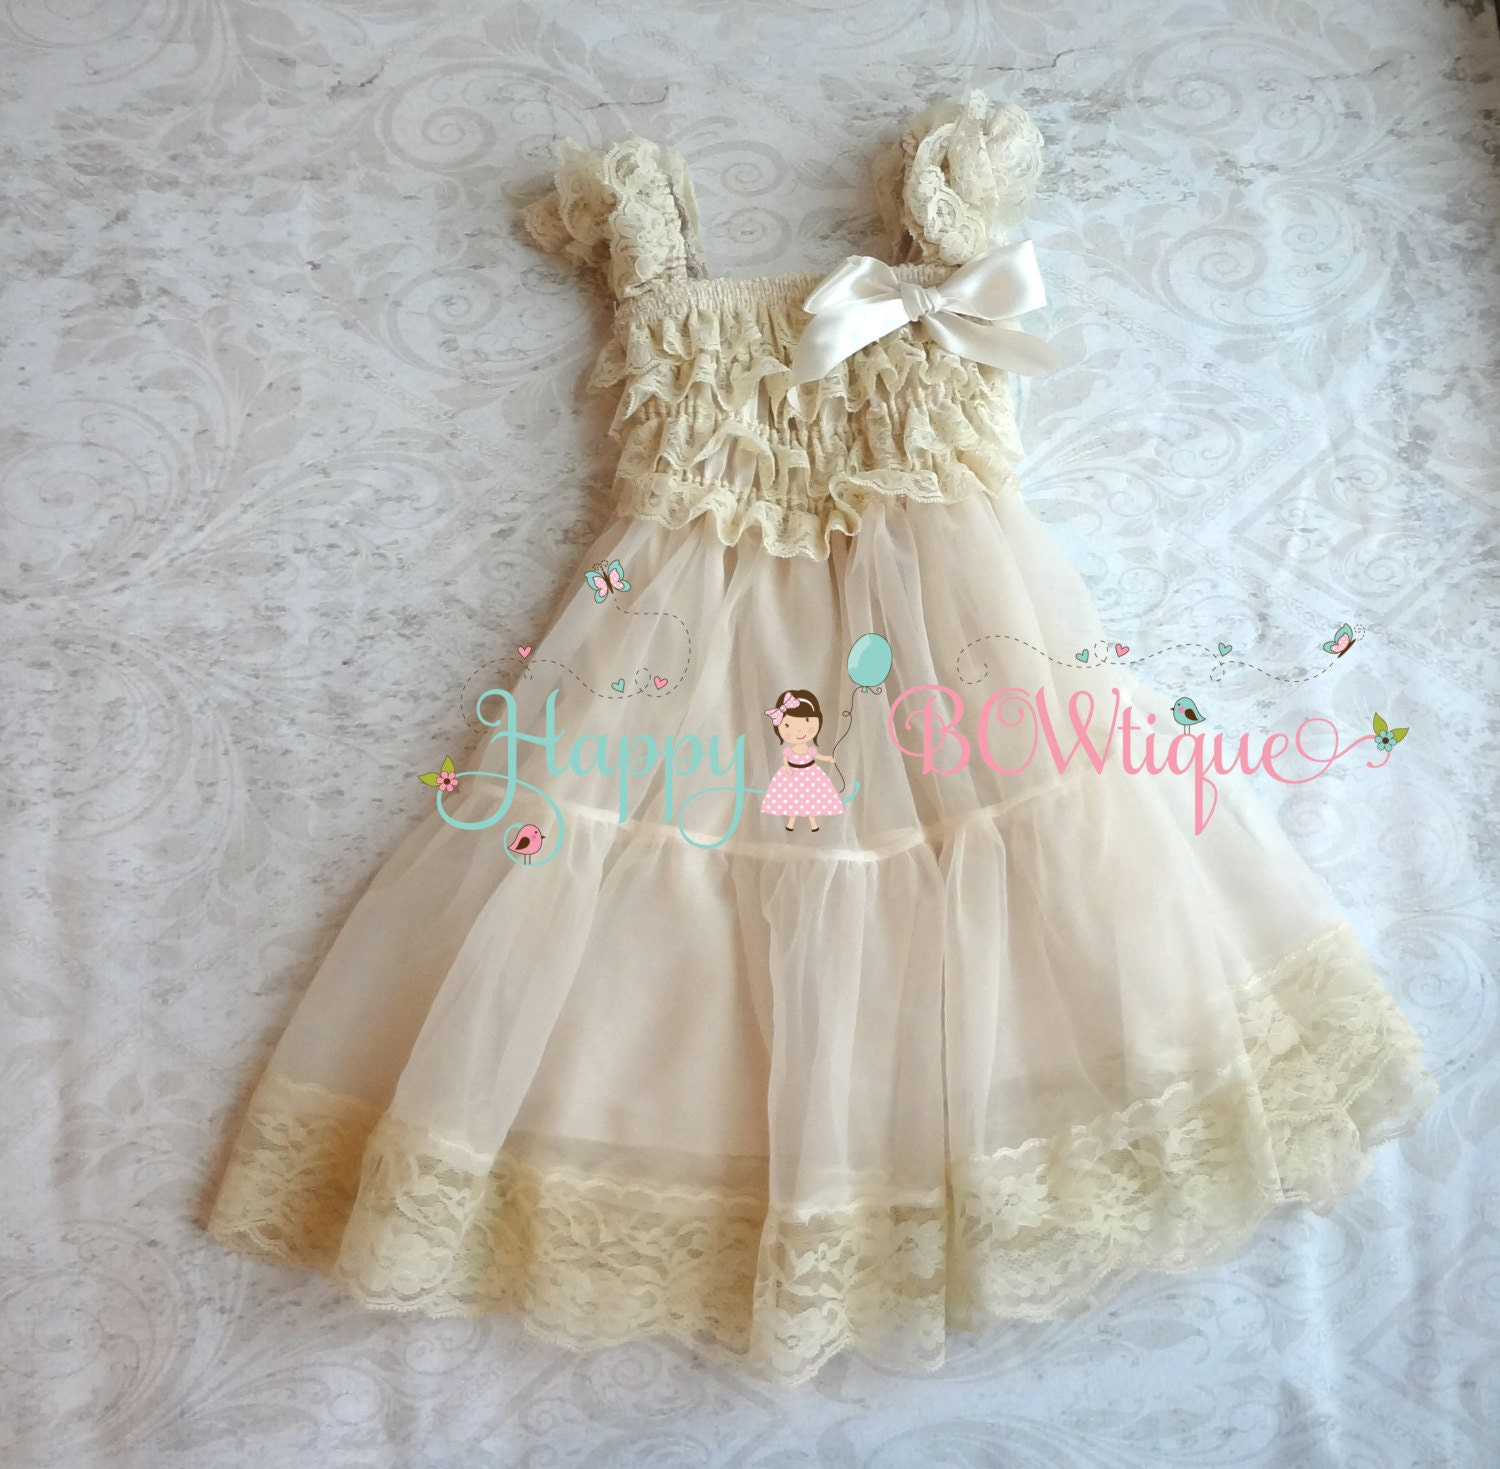 Flower girl dress Champagne Chiffon Lace by HappyBOWtique on Etsy